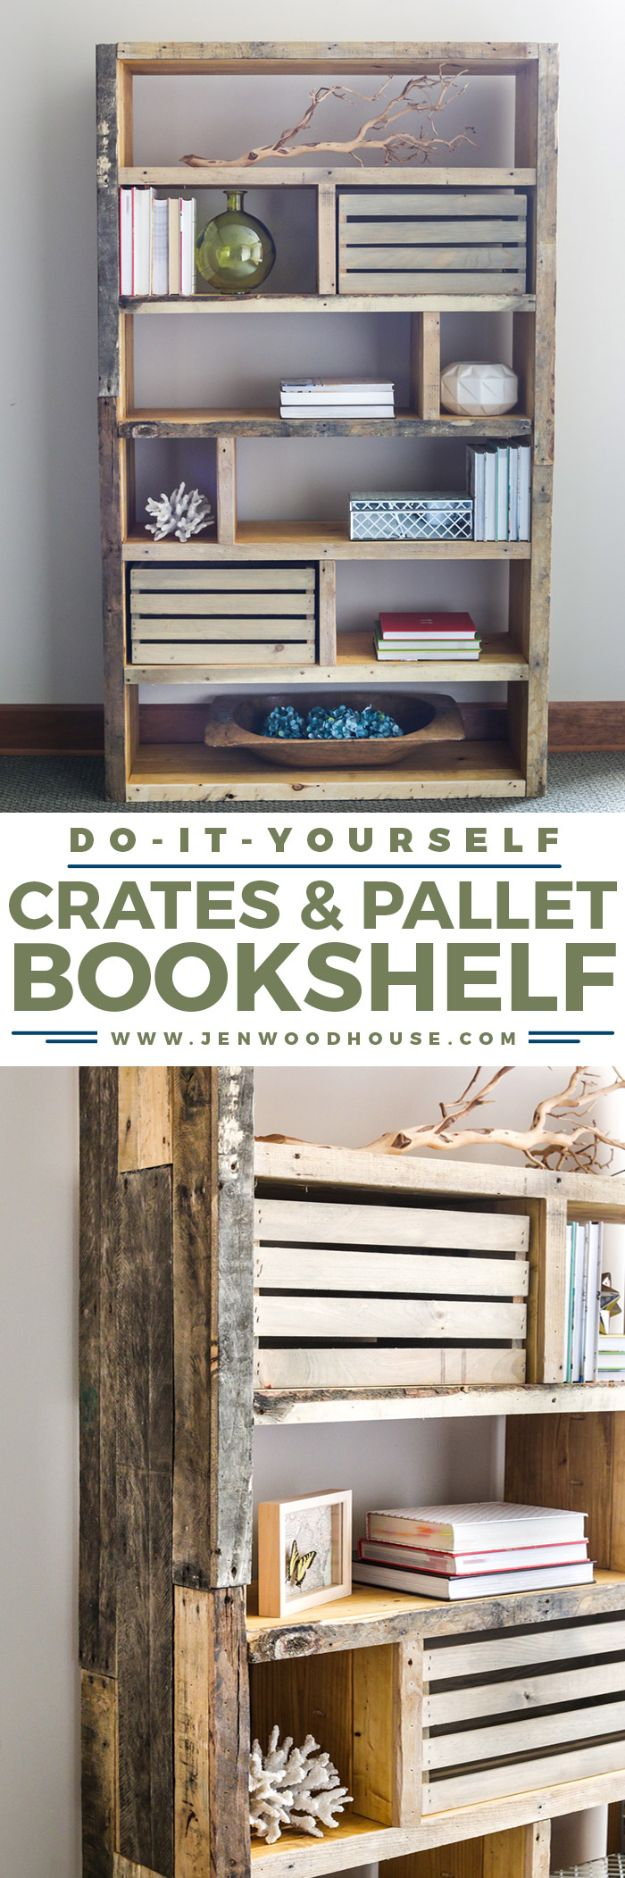 DIY Bookshelf Ideas - Rustic Bookshelf from Crates and Pallet - DYI Bookshelves and Projects - Easy and Cheap Home Decor Idea for Bedroom, Living Room - Step by Step tutorial #diy #diyideas #diydecor #homedecor